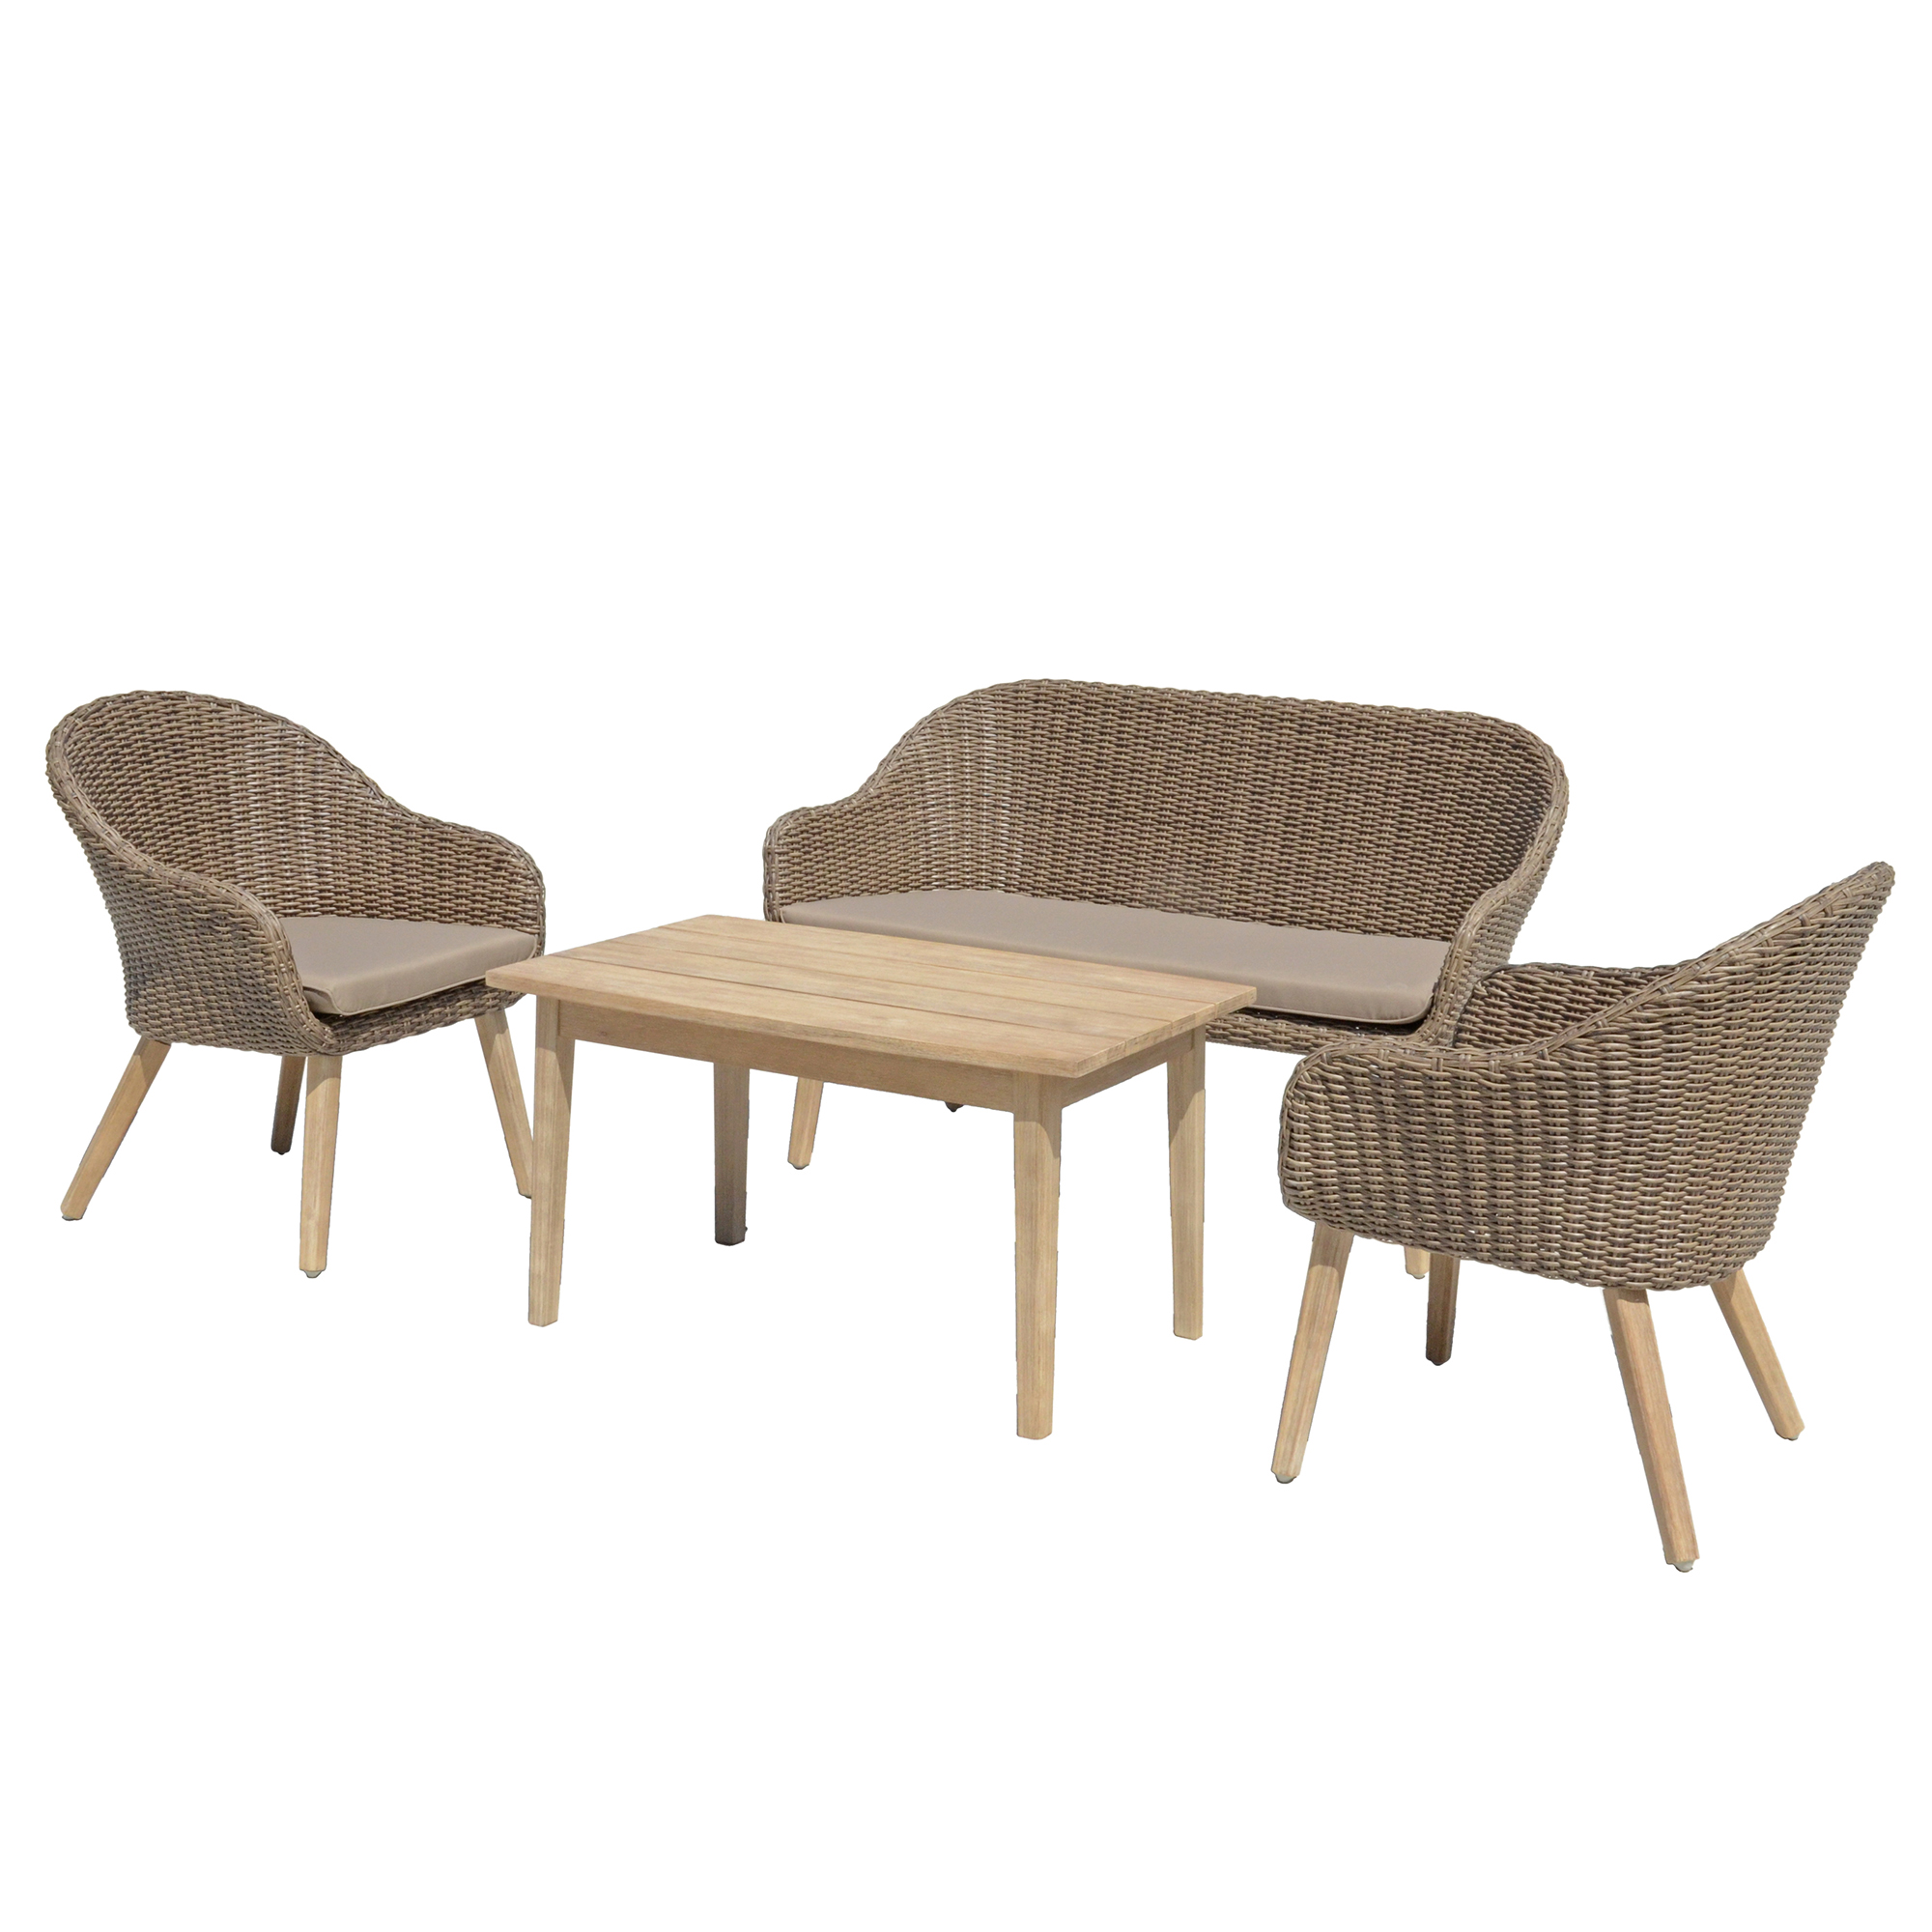 gartenm bel set 4 teilig lounge set polyrattan gartenset sitzgruppe garnitur set. Black Bedroom Furniture Sets. Home Design Ideas